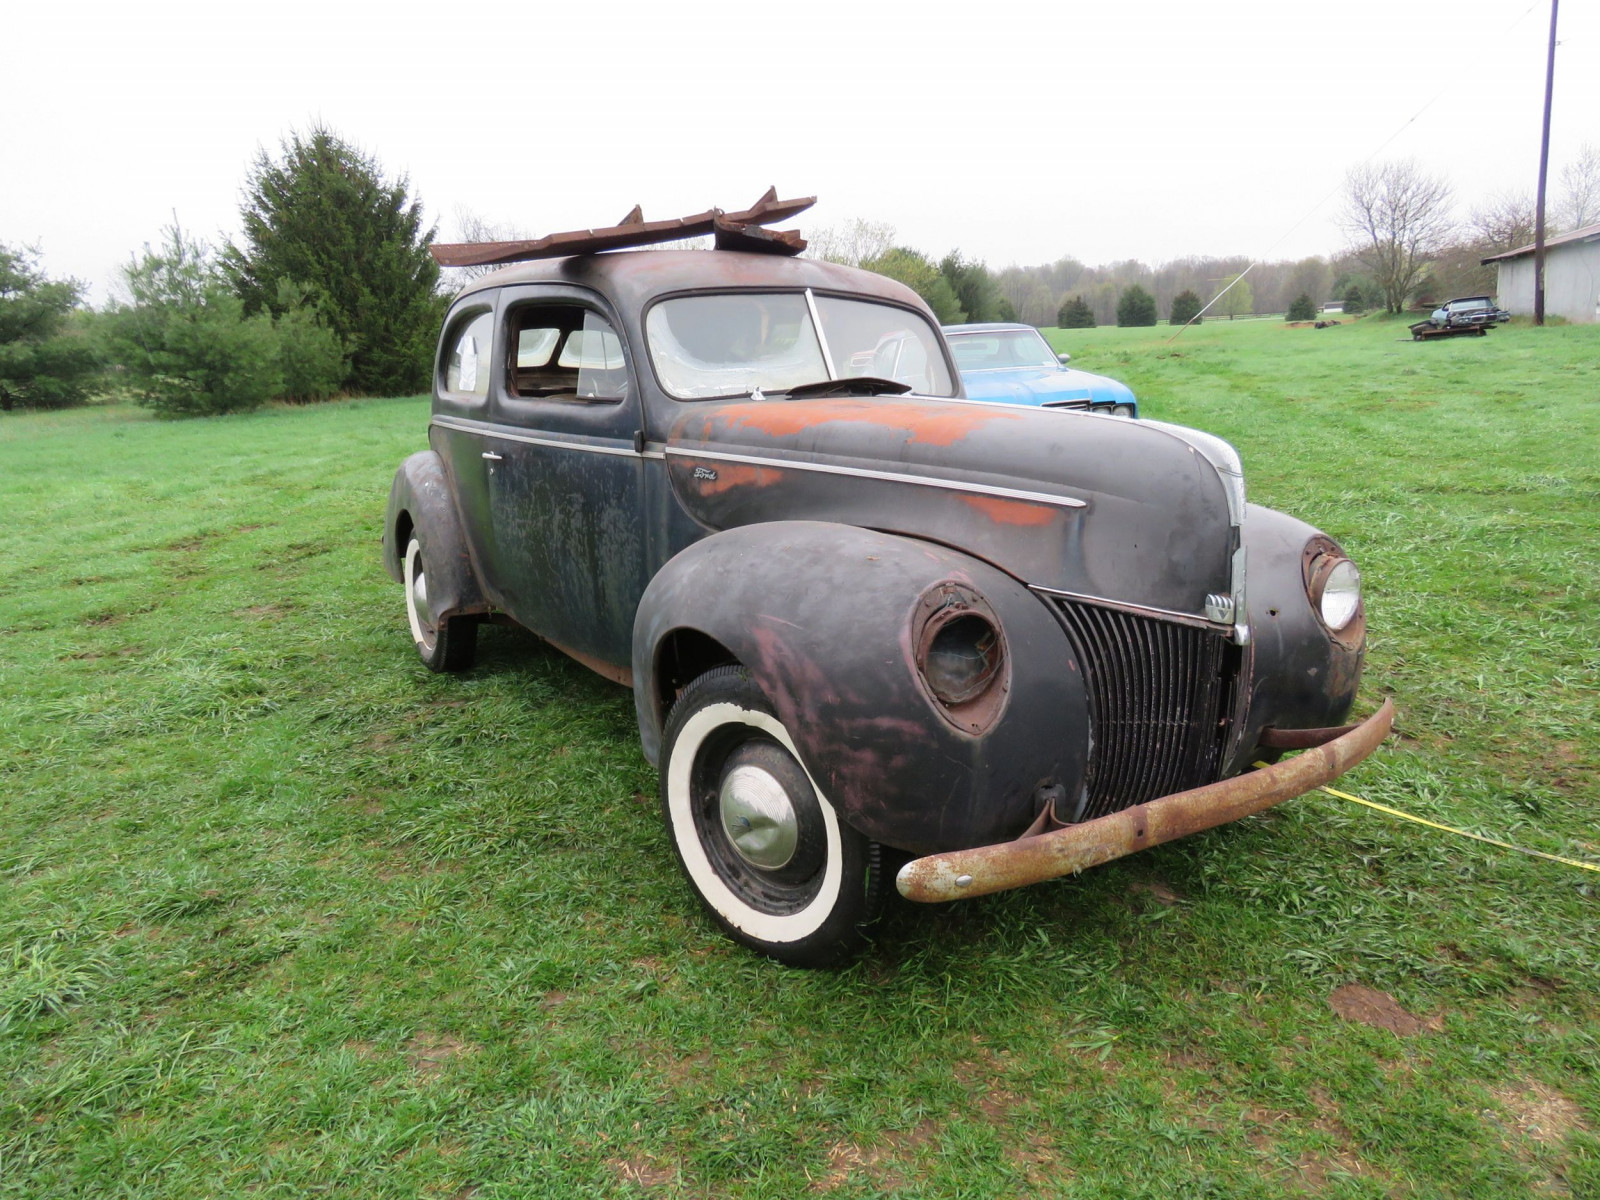 1940 Ford 2dr Sedan for Rod or Restore - Image 3